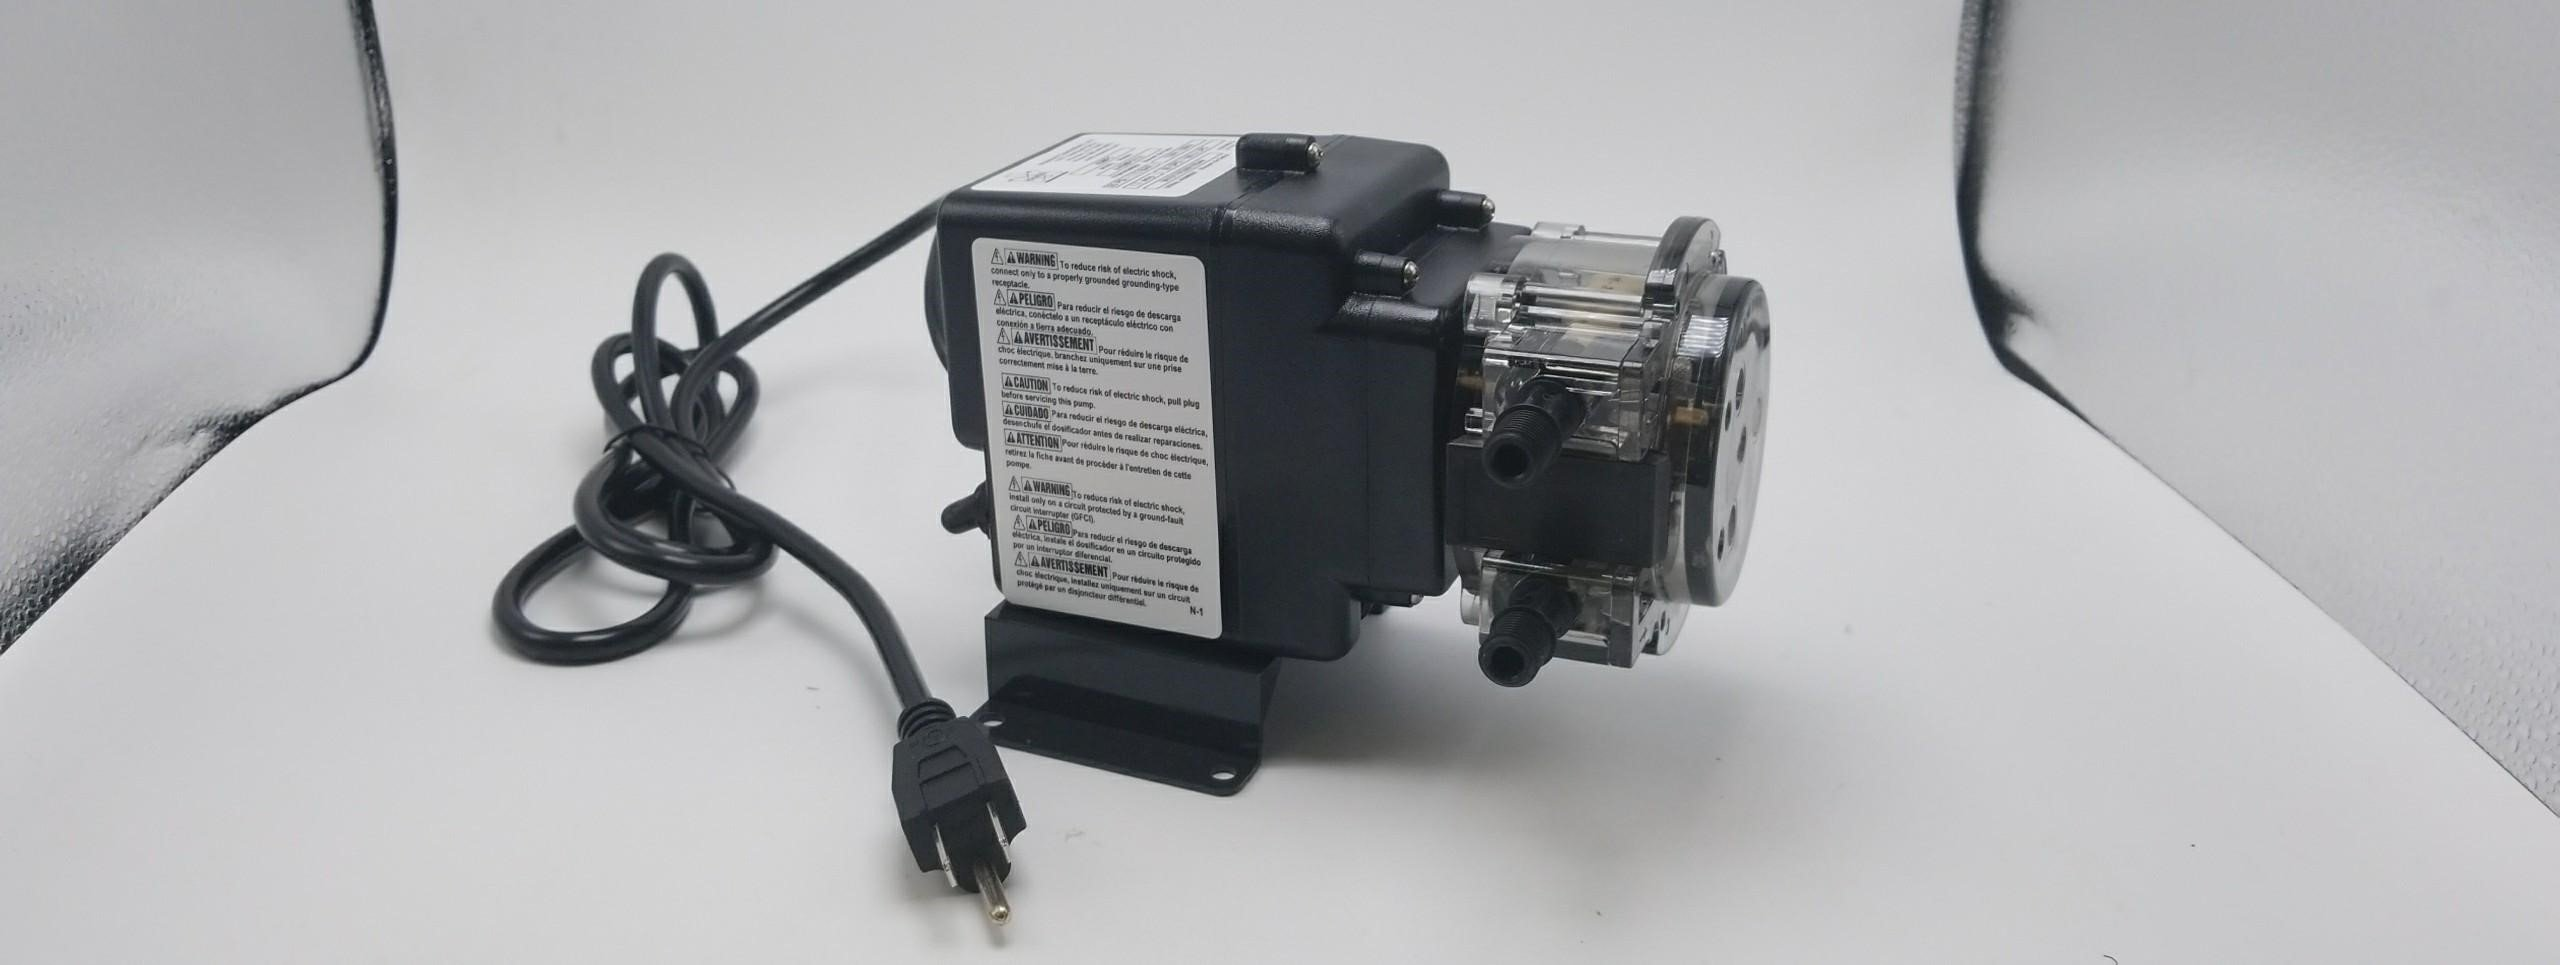 Stenner Pump 85MPHP17 - Stenner Peristaltic Pump Fixed Head - Rated at 17 GPD Fixed Head. Rated at 100 psi. - Ideal Chlorine Injection Pump. 120 Volts, Model Number 85MFH2 (Motor and Pump Head only)